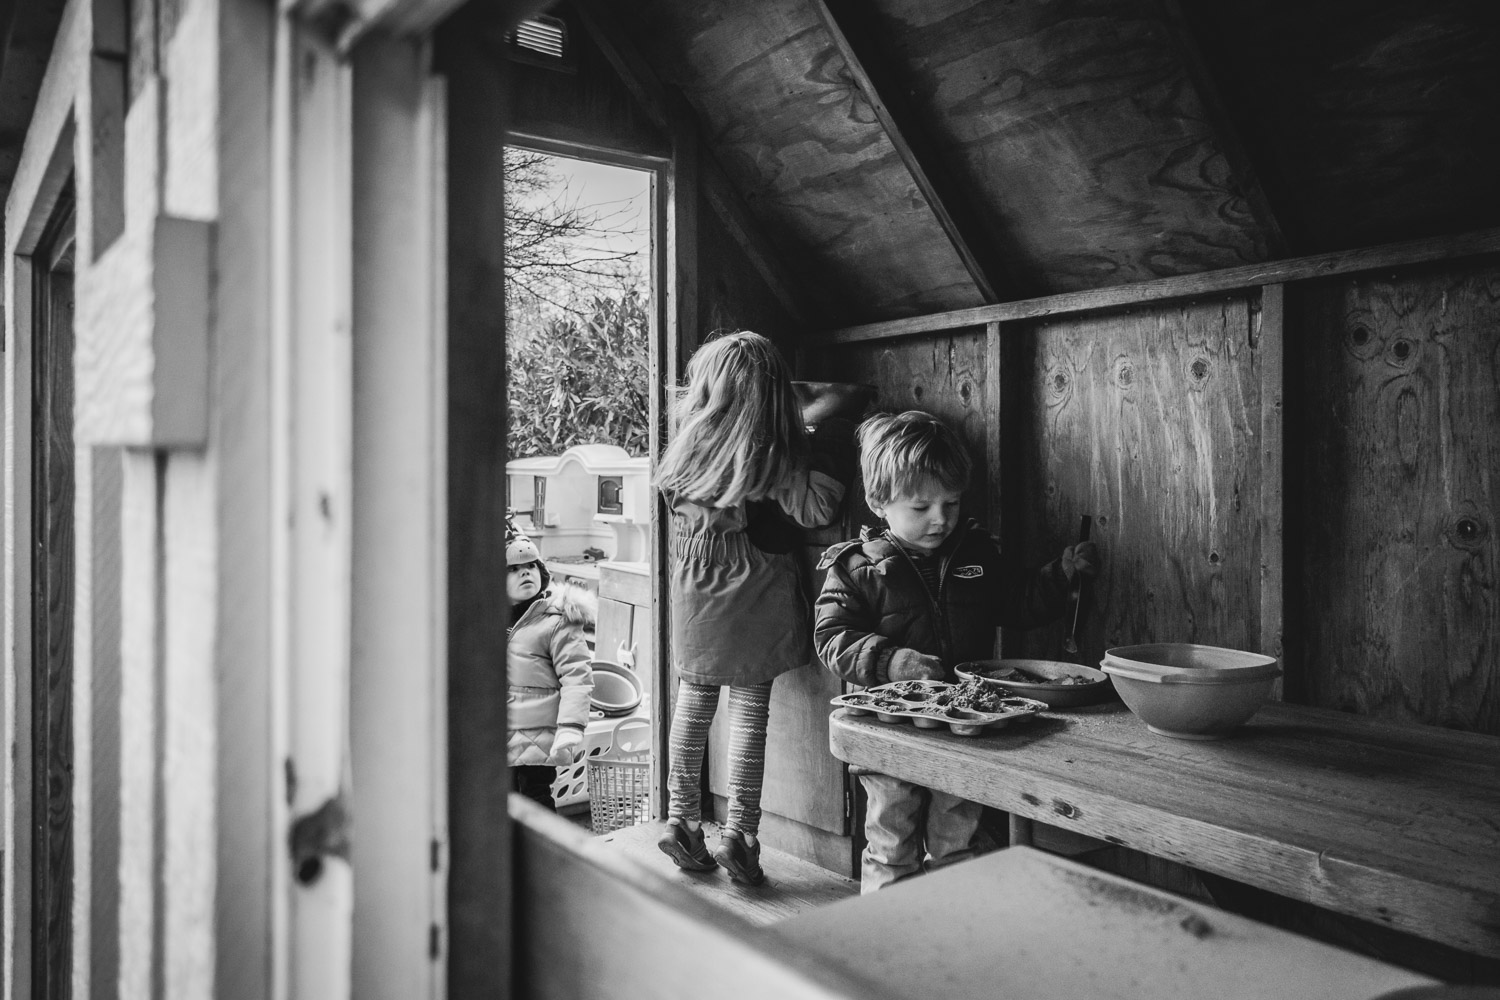 Kids playing in outdoor playhouse.